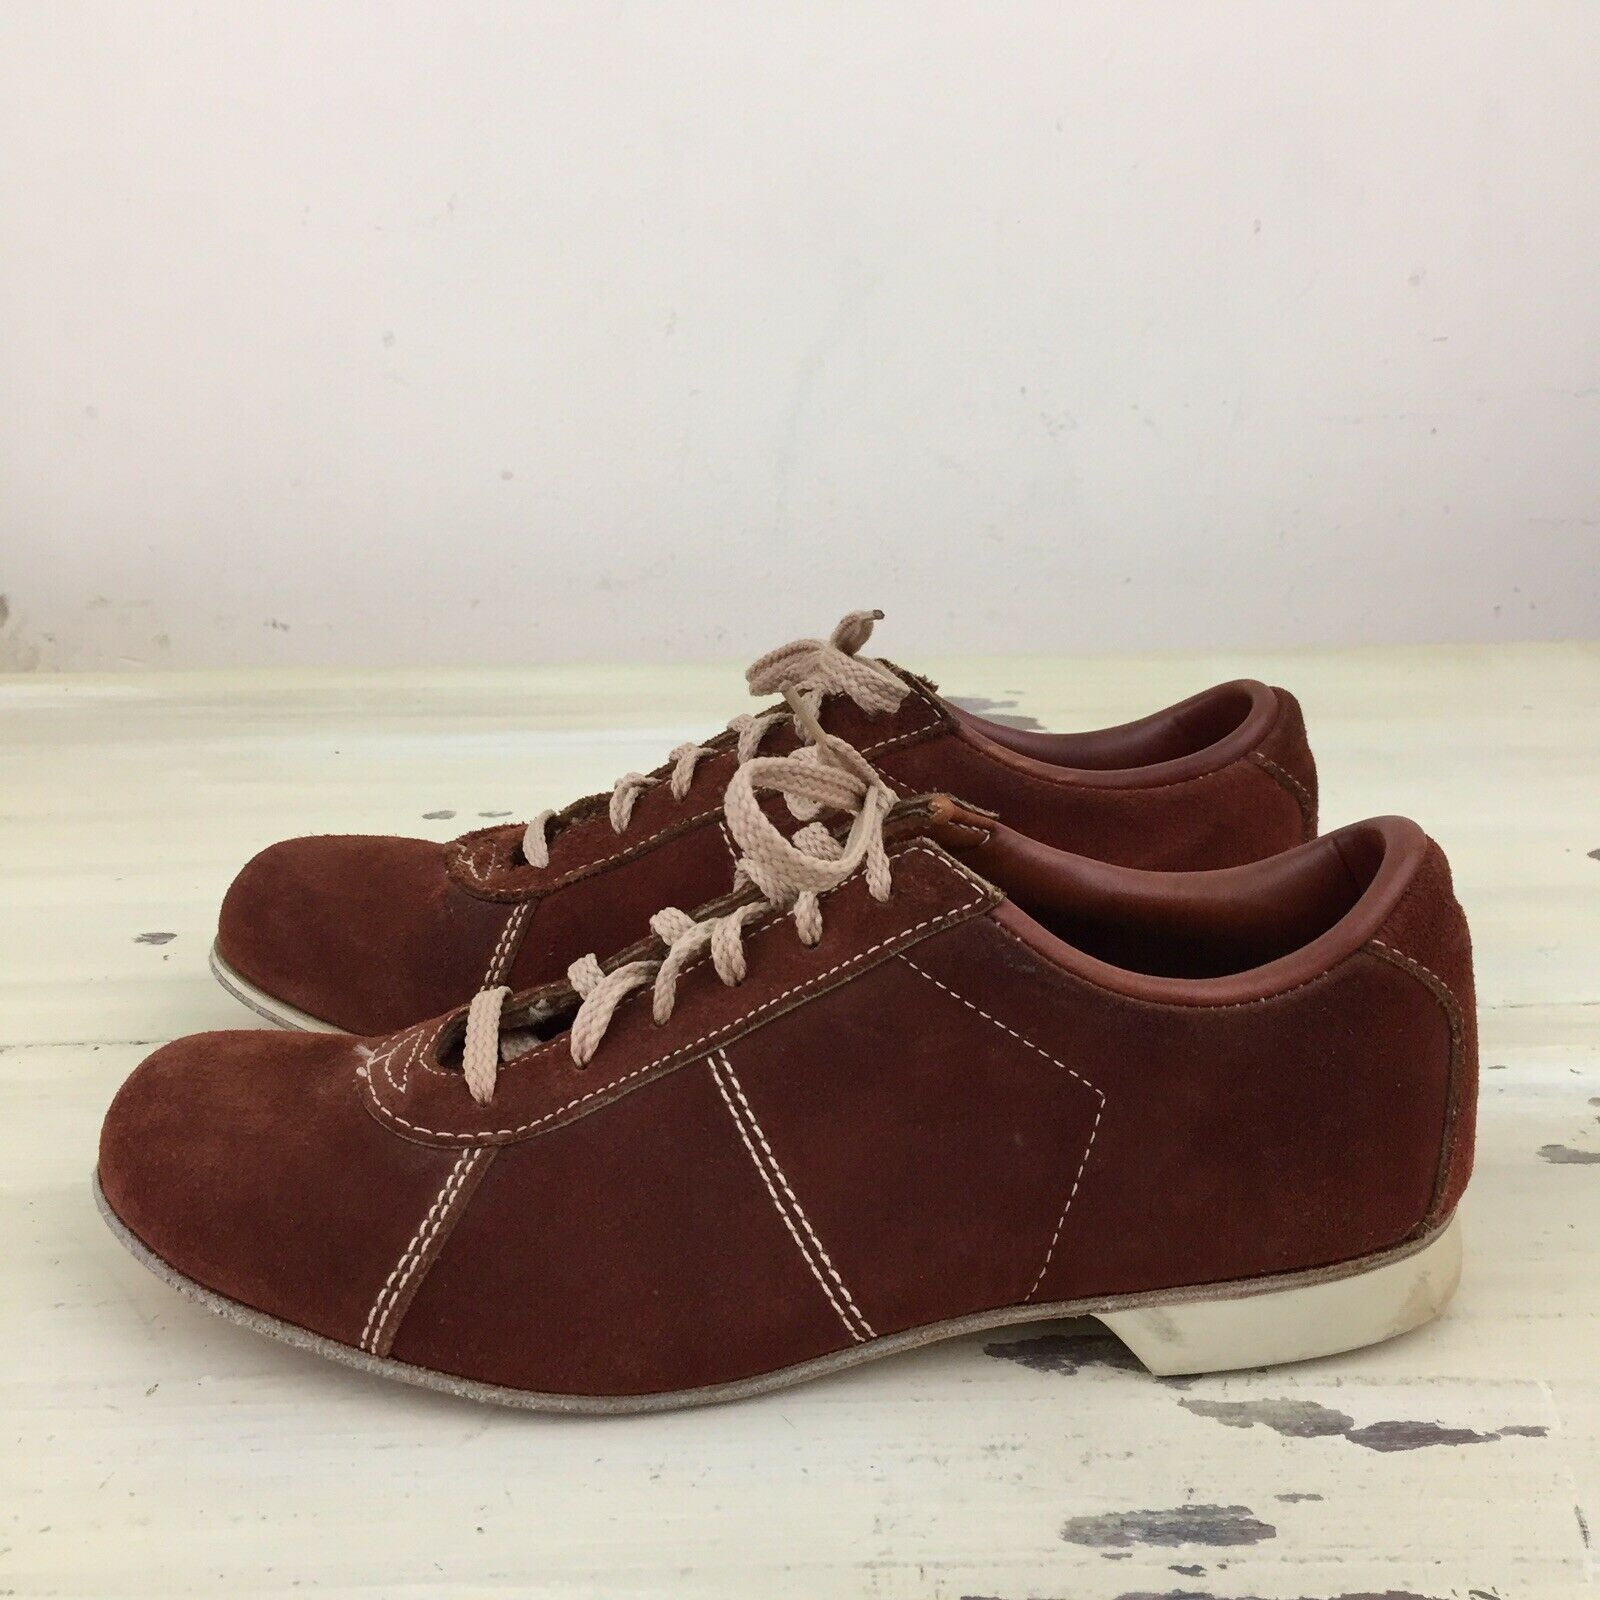 HYDE BOWLING SHOES - Vtg 60s-70s Brown Suede Leather, Womens Sz 9 - MUST SEE